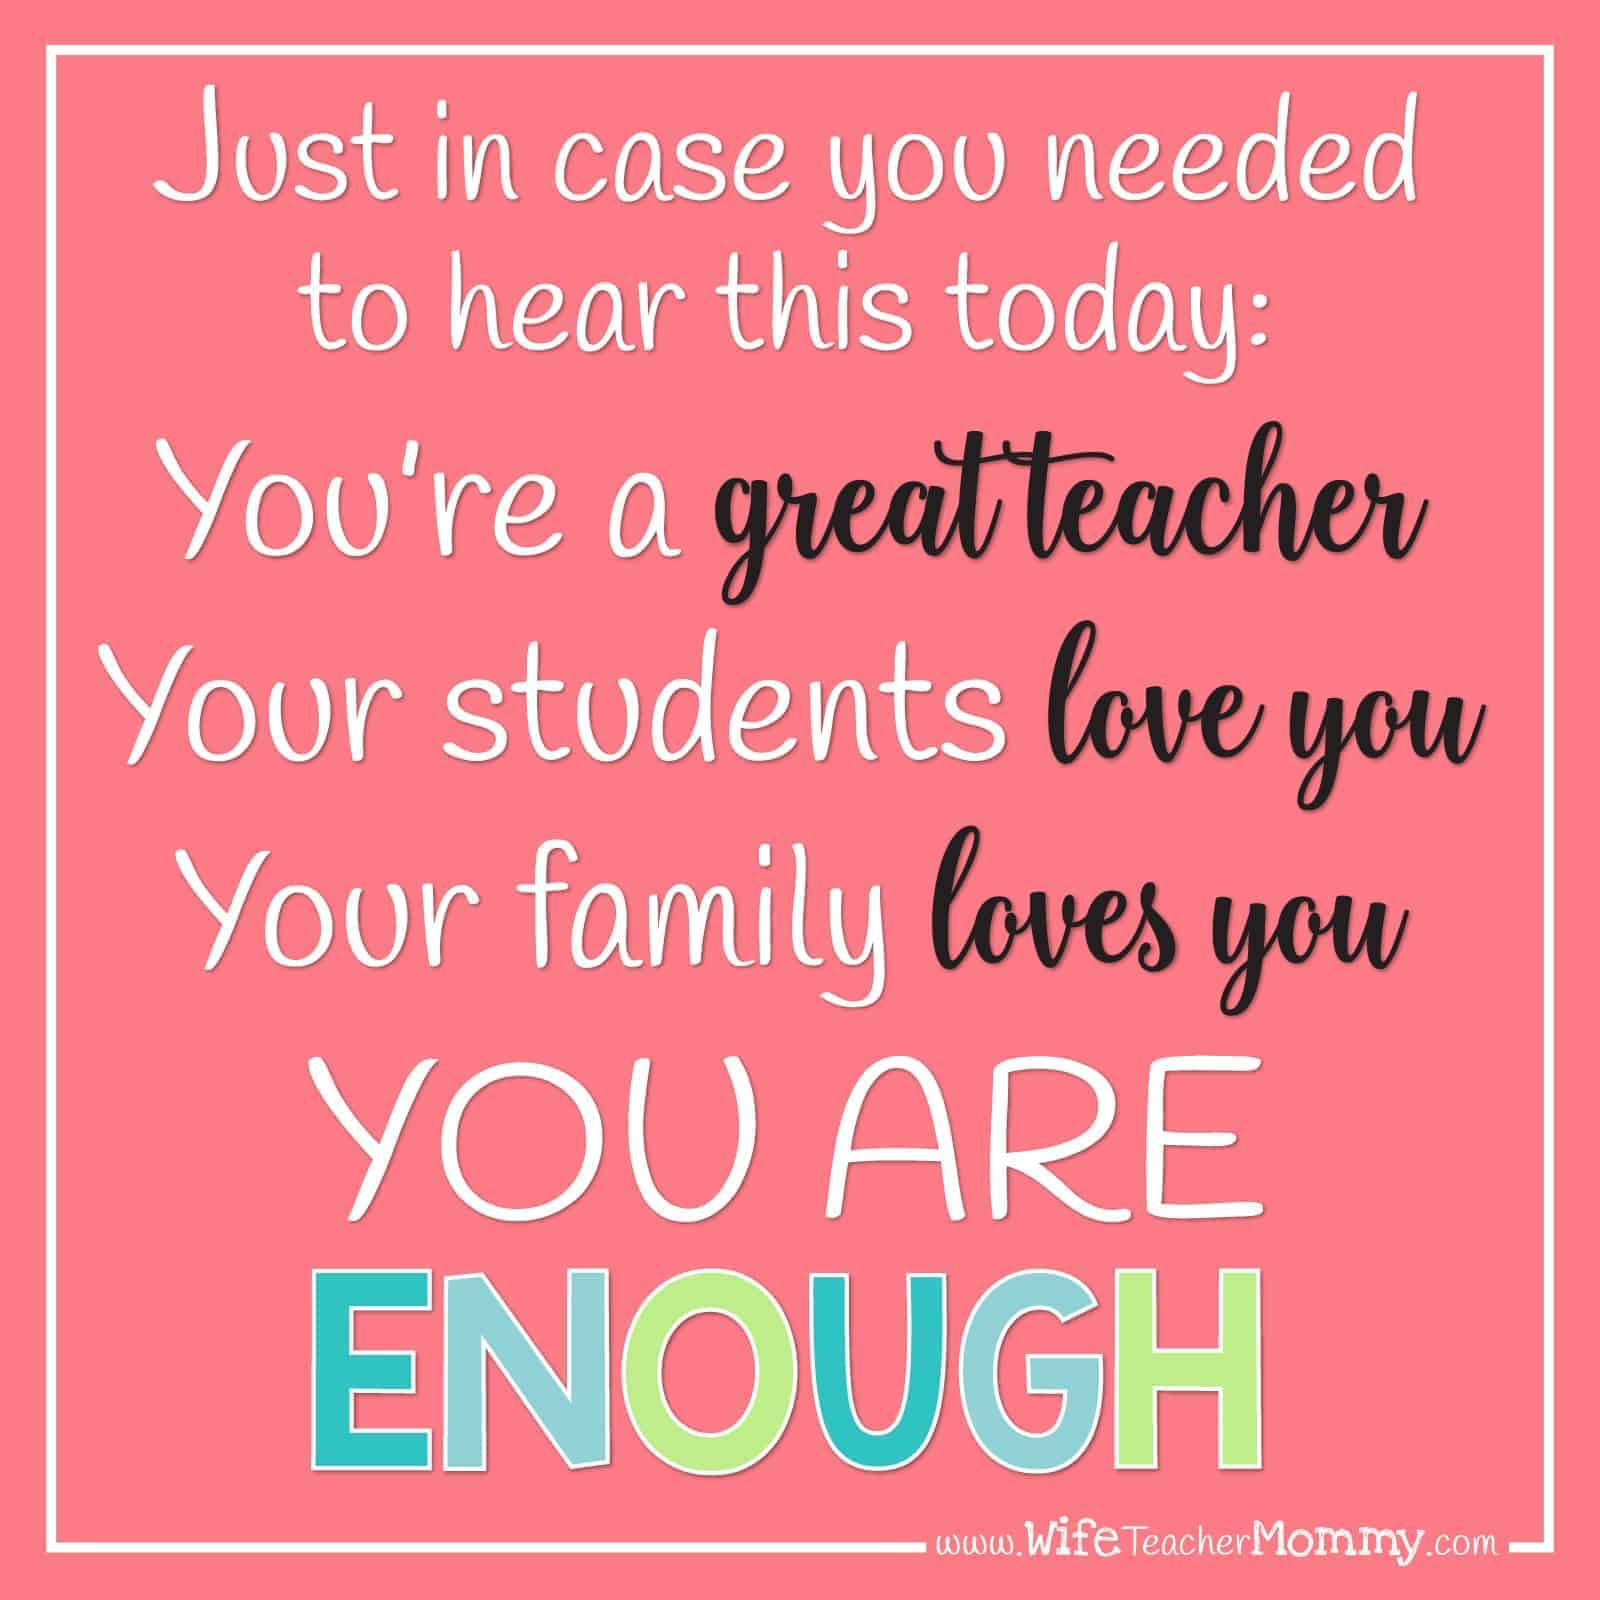 Just in case you needed to hear this today: You're a great teacher. Your students love you. Your family loves you. YOU ARE ENOUGH.